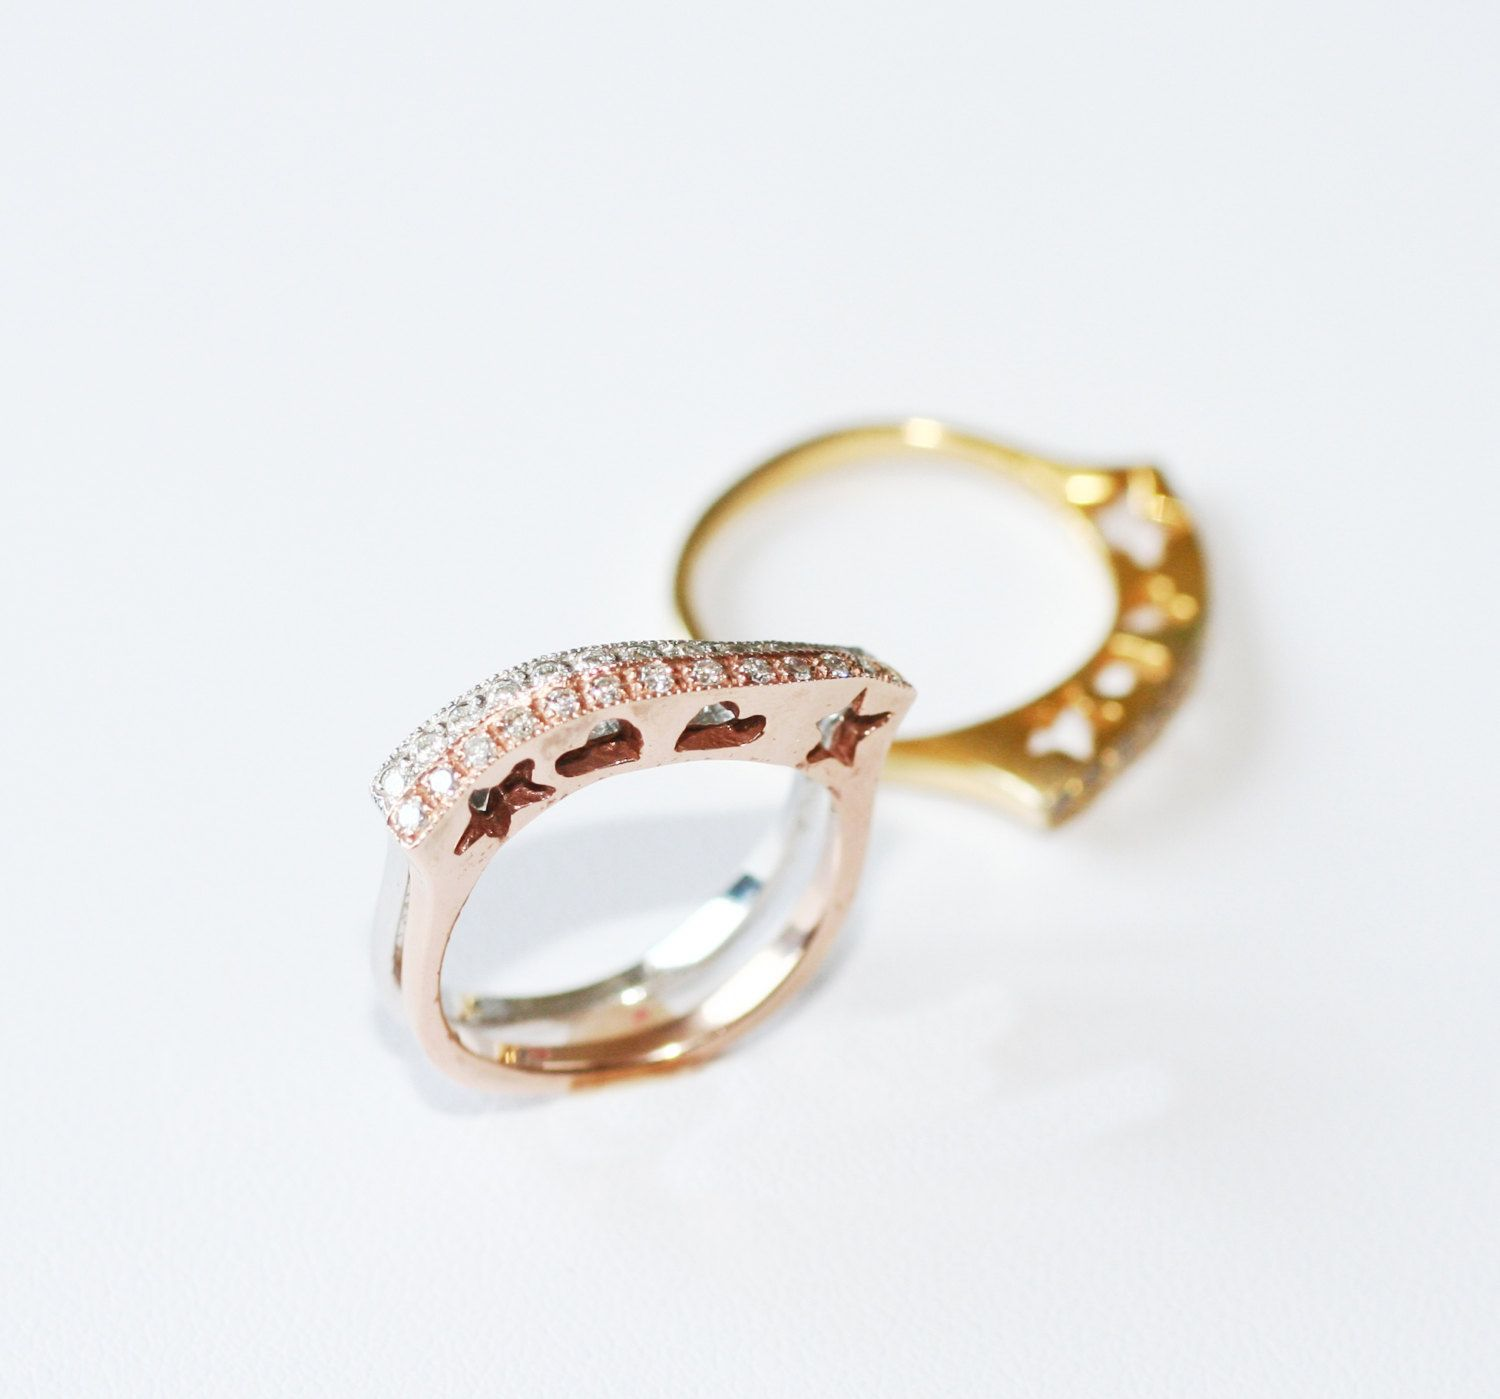 Set of Two 0.28ct  Diamond Rings  in 14k Gold by GAPFineJewelry on Etsy https://www.etsy.com/listing/157517051/set-of-two-028ct-diamond-rings-in-14k